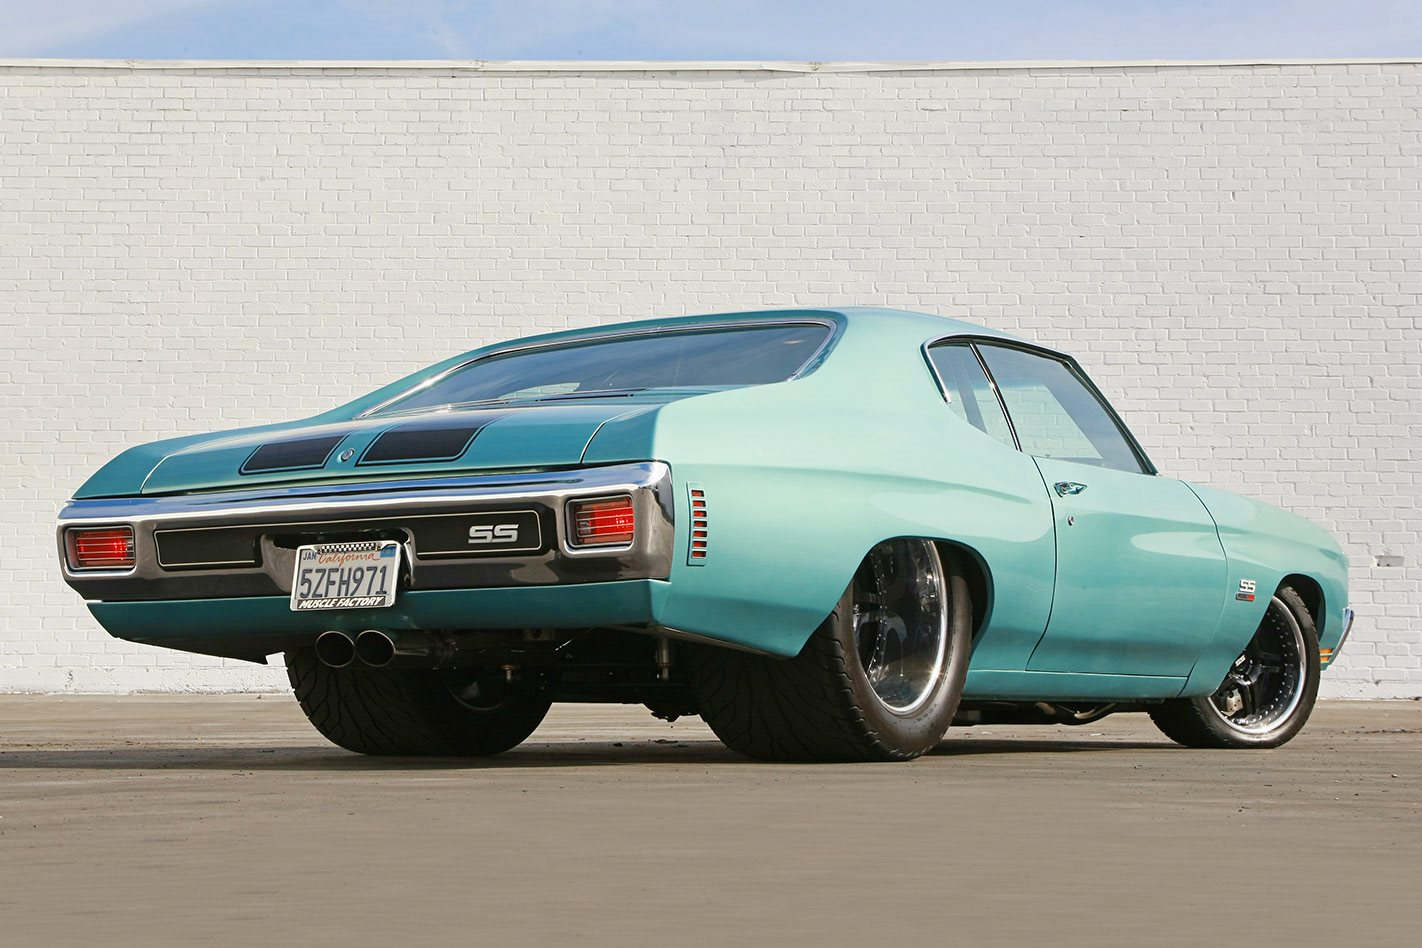 Chevelle Ss Rear on Twin Turbo Duramax Chevelle